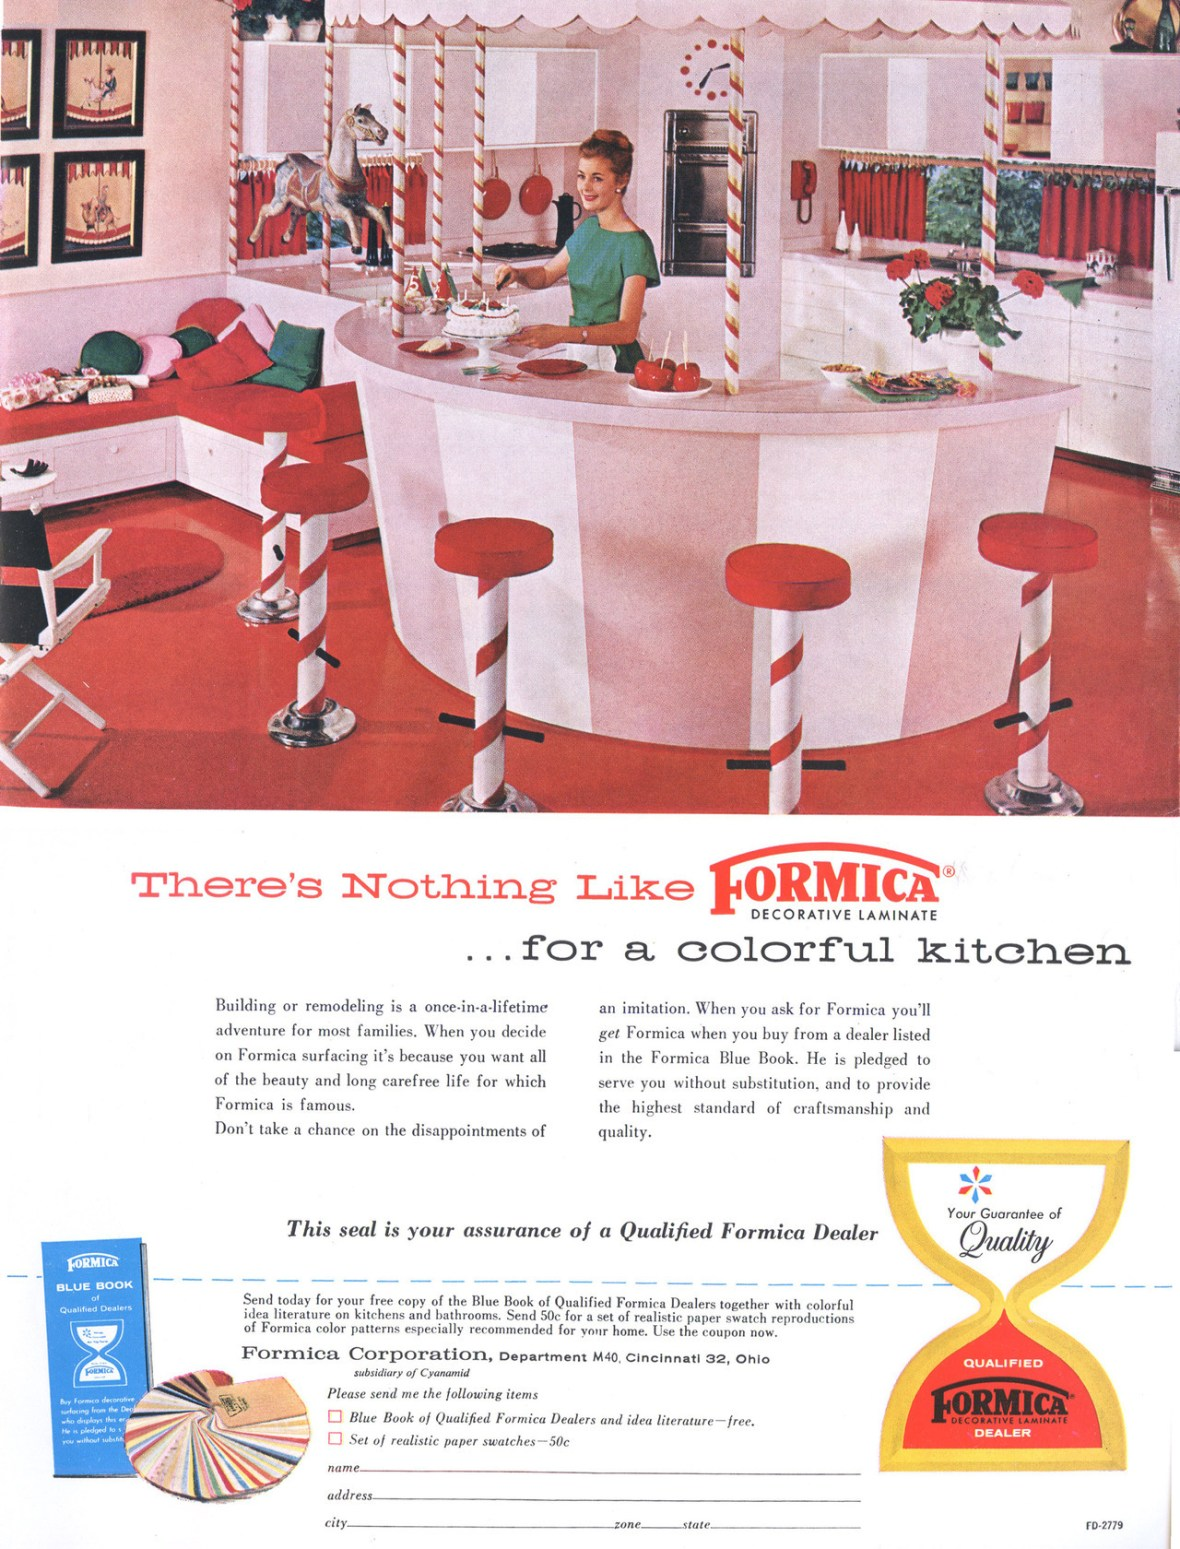 Formica Corporation - published in House Beautiful's Building Manual - Fall-Winter 1961-62